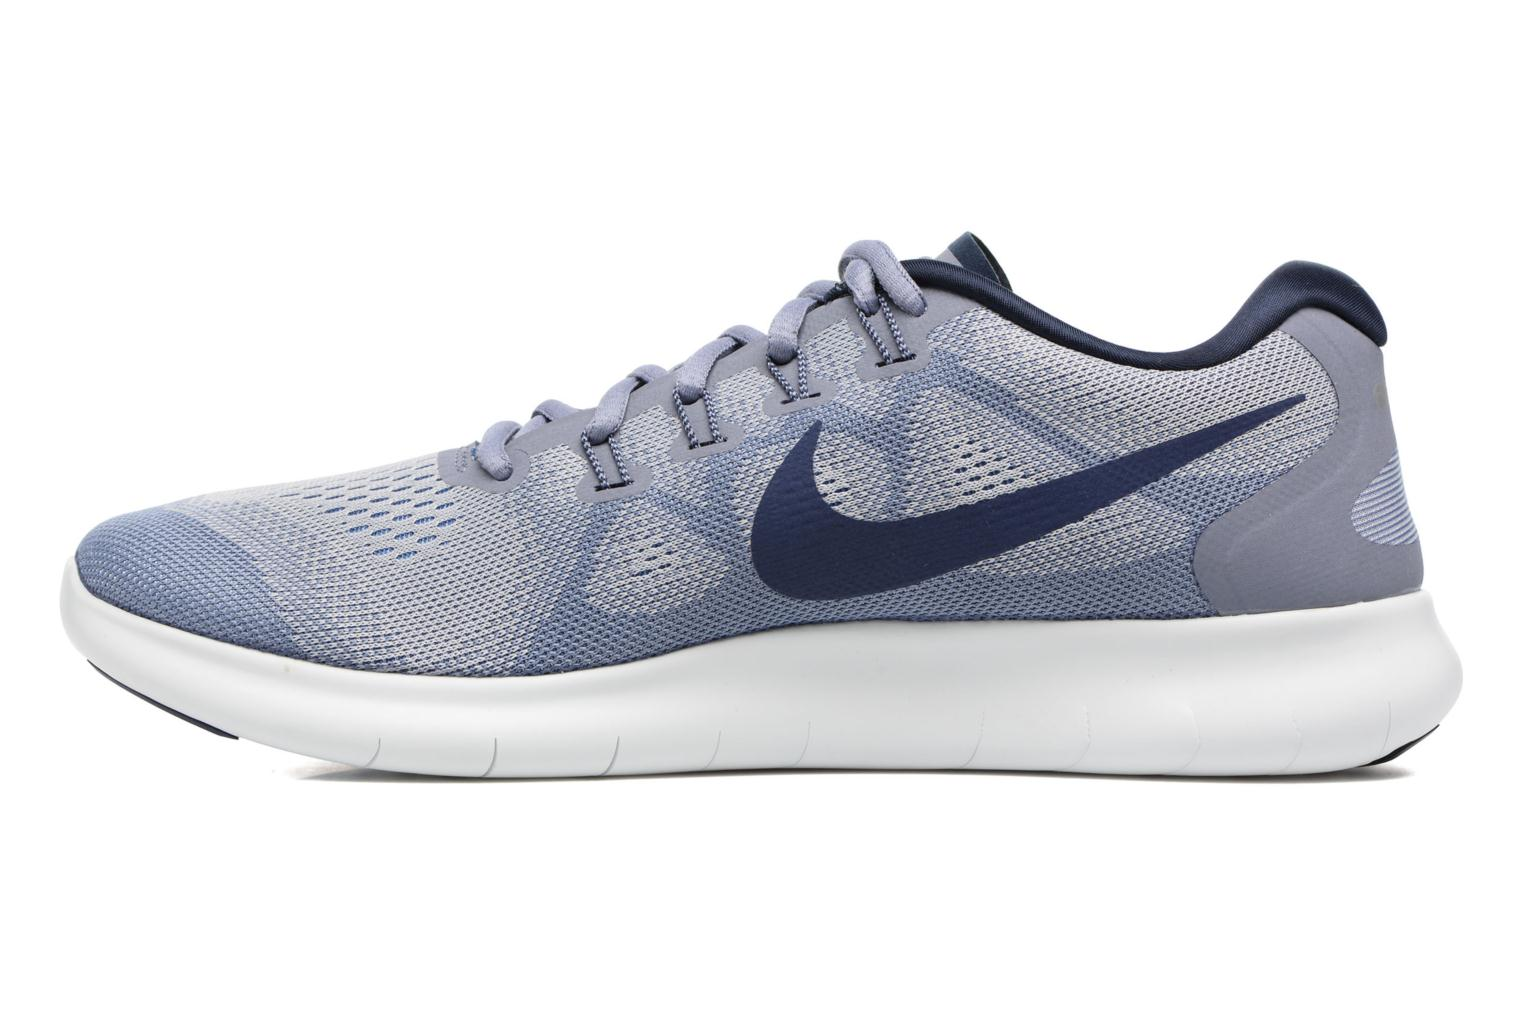 Nike Free Rn 2017 Wolf Grey/Binary Blue-Dark Sky Blue